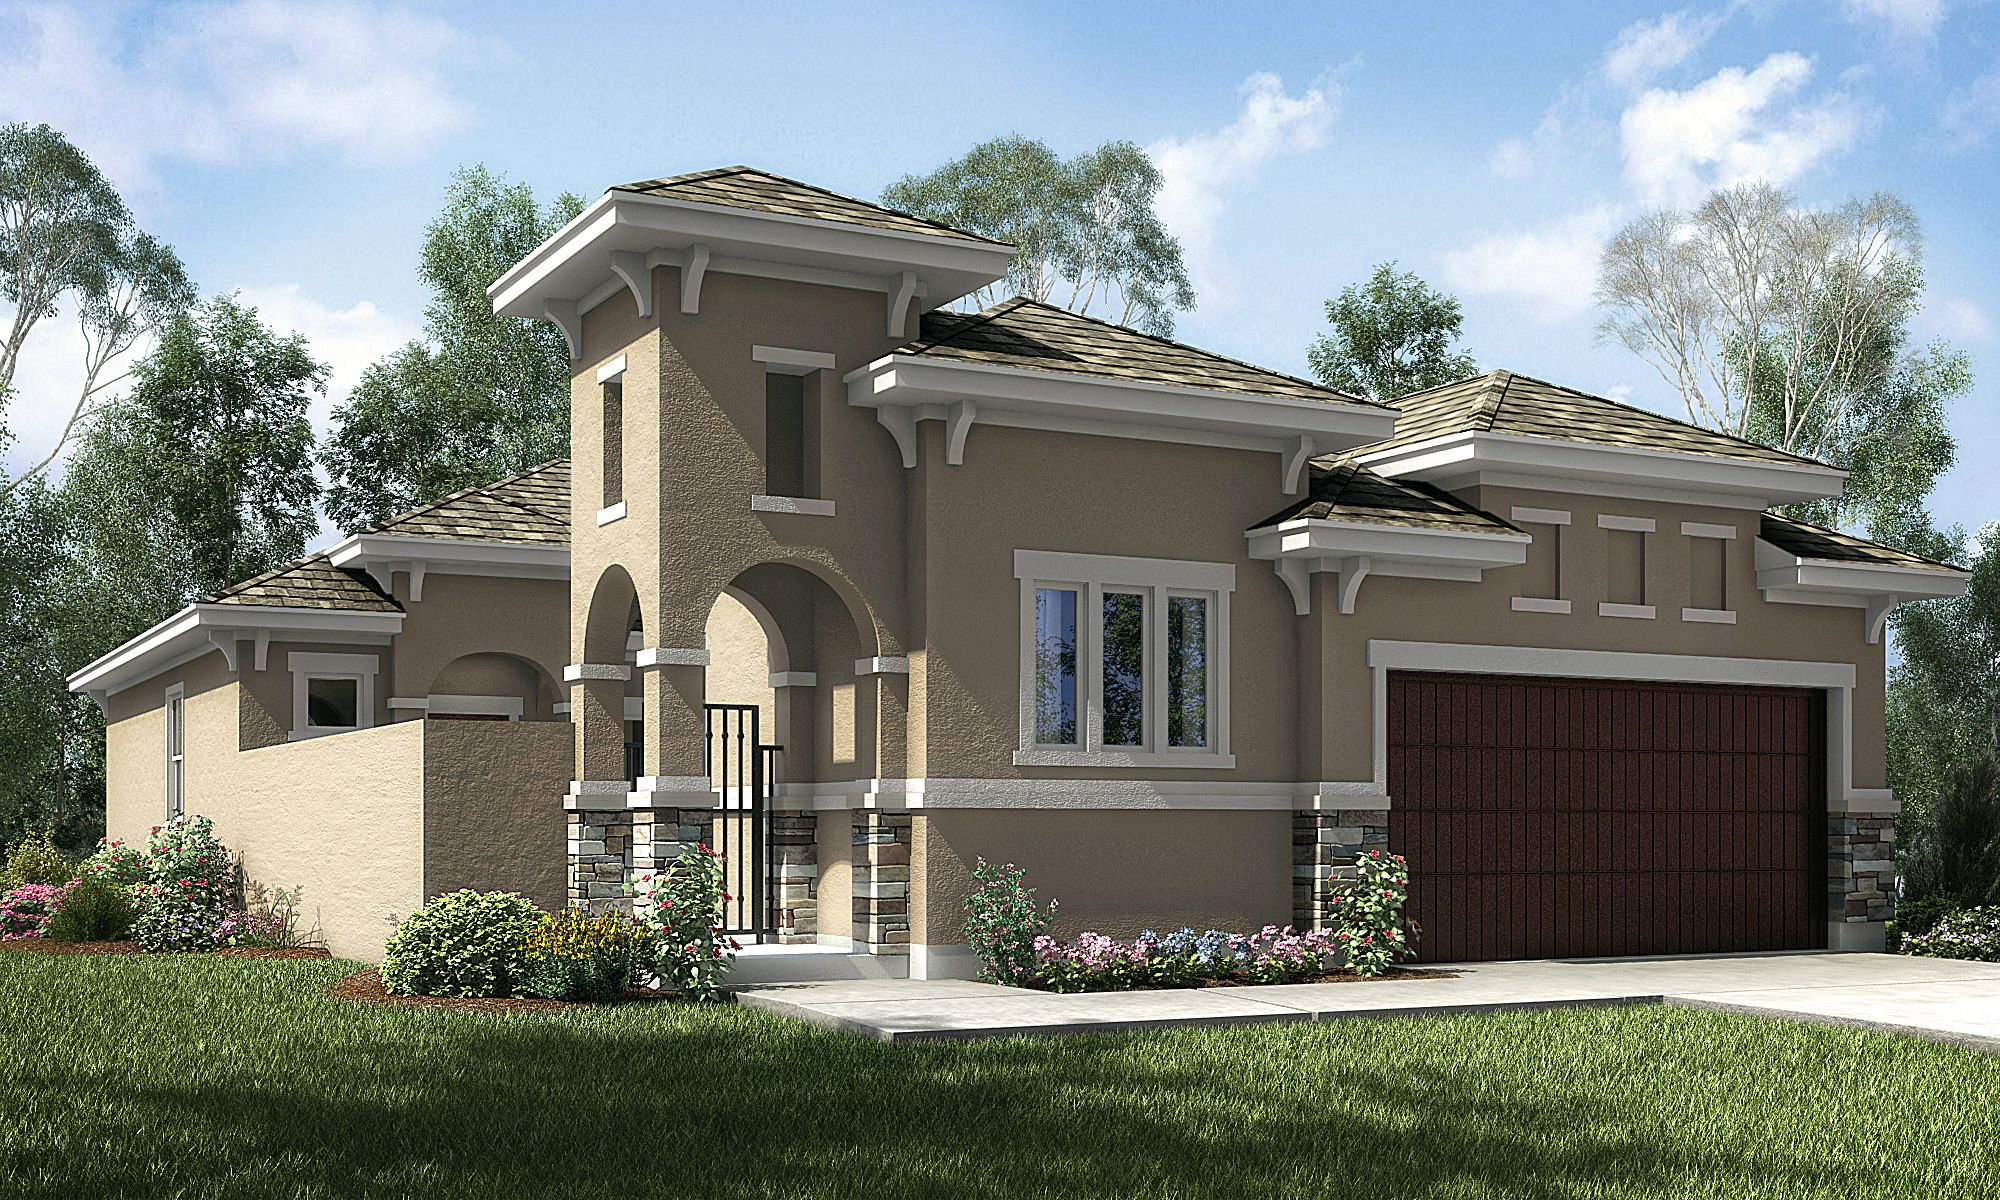 Single Family for Sale at Retama Village At Bentsen Palm - Sage 2204 Seagull Lane Mission, Texas 78572 United States